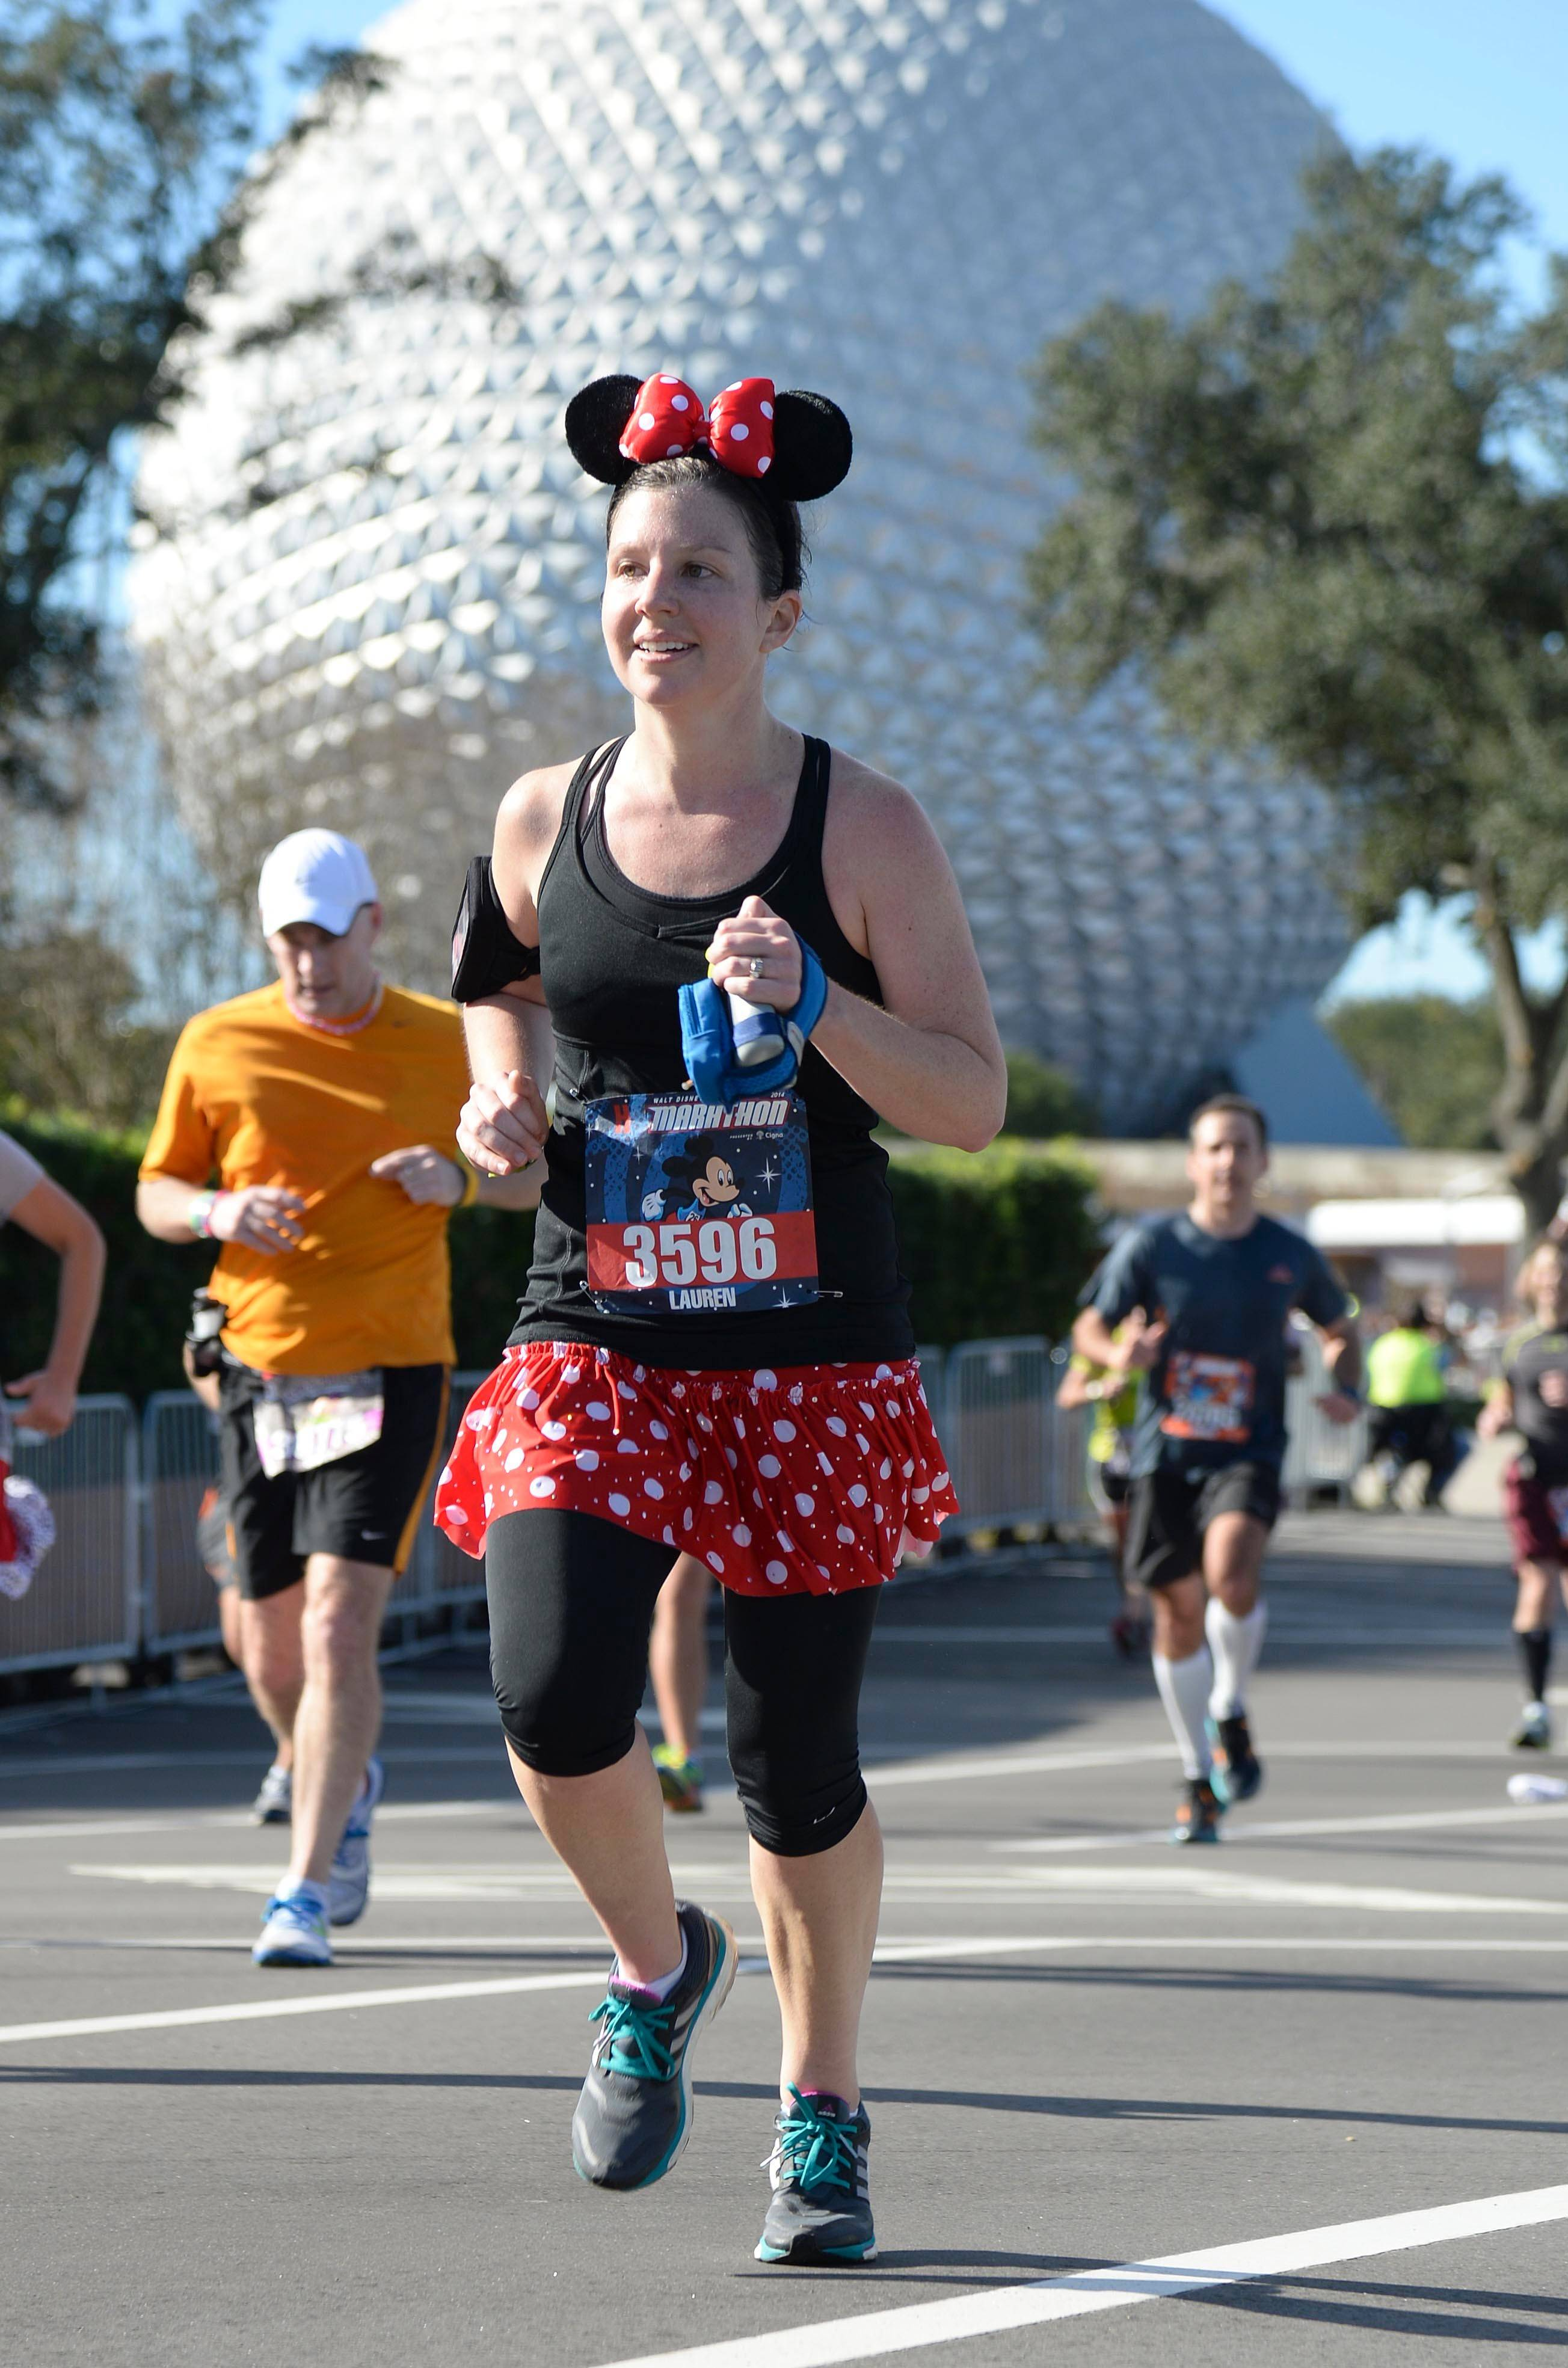 Runners race through Epcot during the 2014 Walt Disney World Marathon. The annual event takes athletes through all four Walt Disney World theme parks in Lake Buena Vista, Fla. Runners from 50 states and 60 countries participated in the weekend events presented by runDisney.